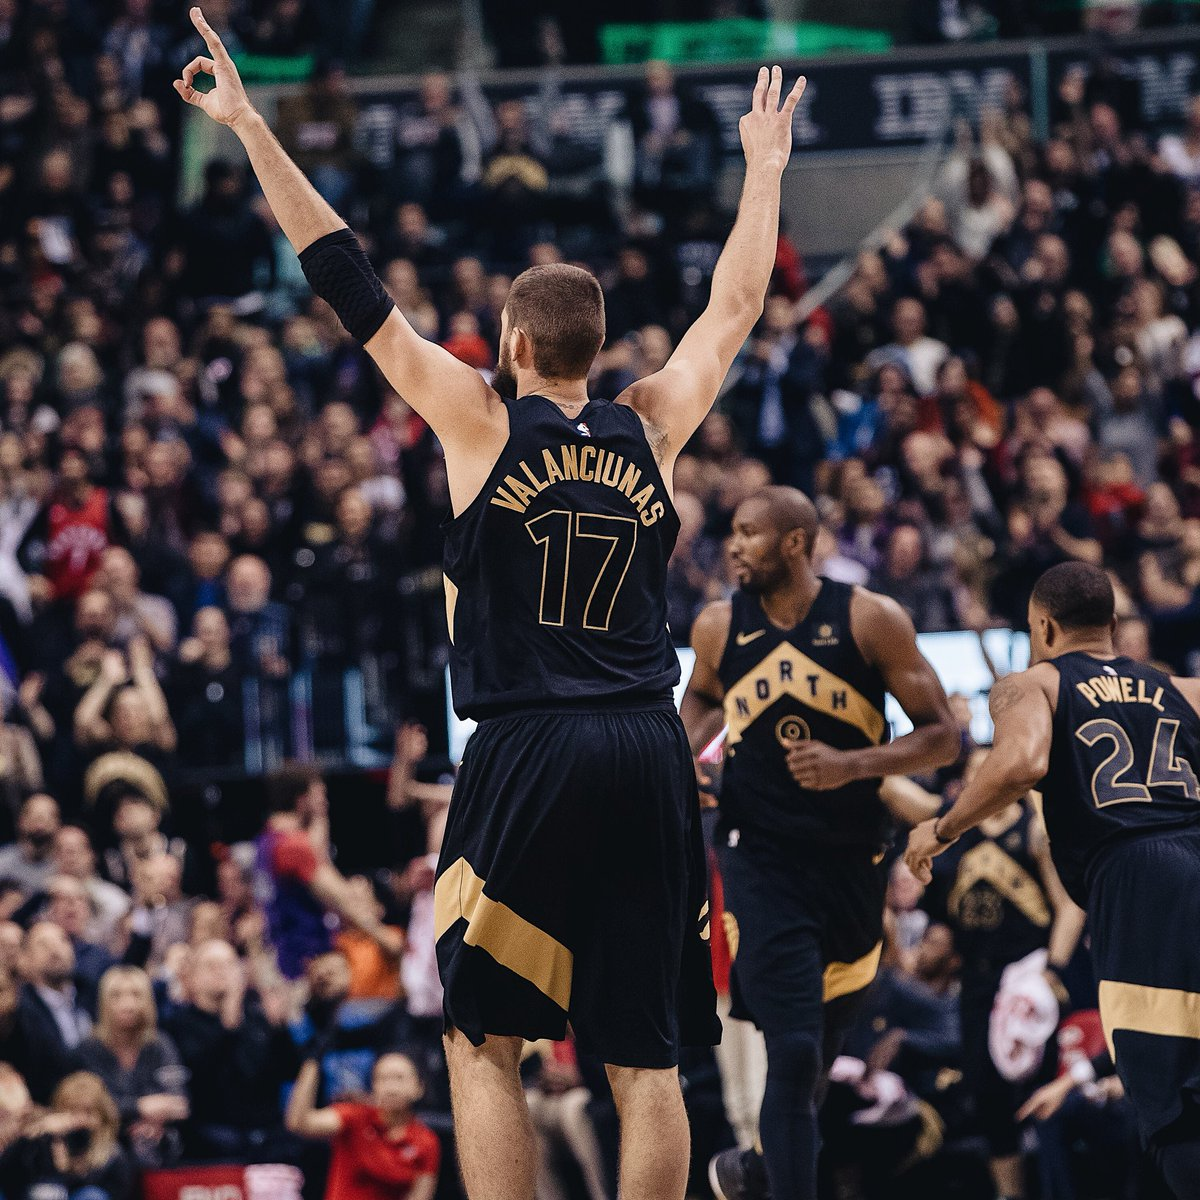 Great team win. The fans made it seem like a playoff game. Thank you! :))  #wethenorth #drakenight